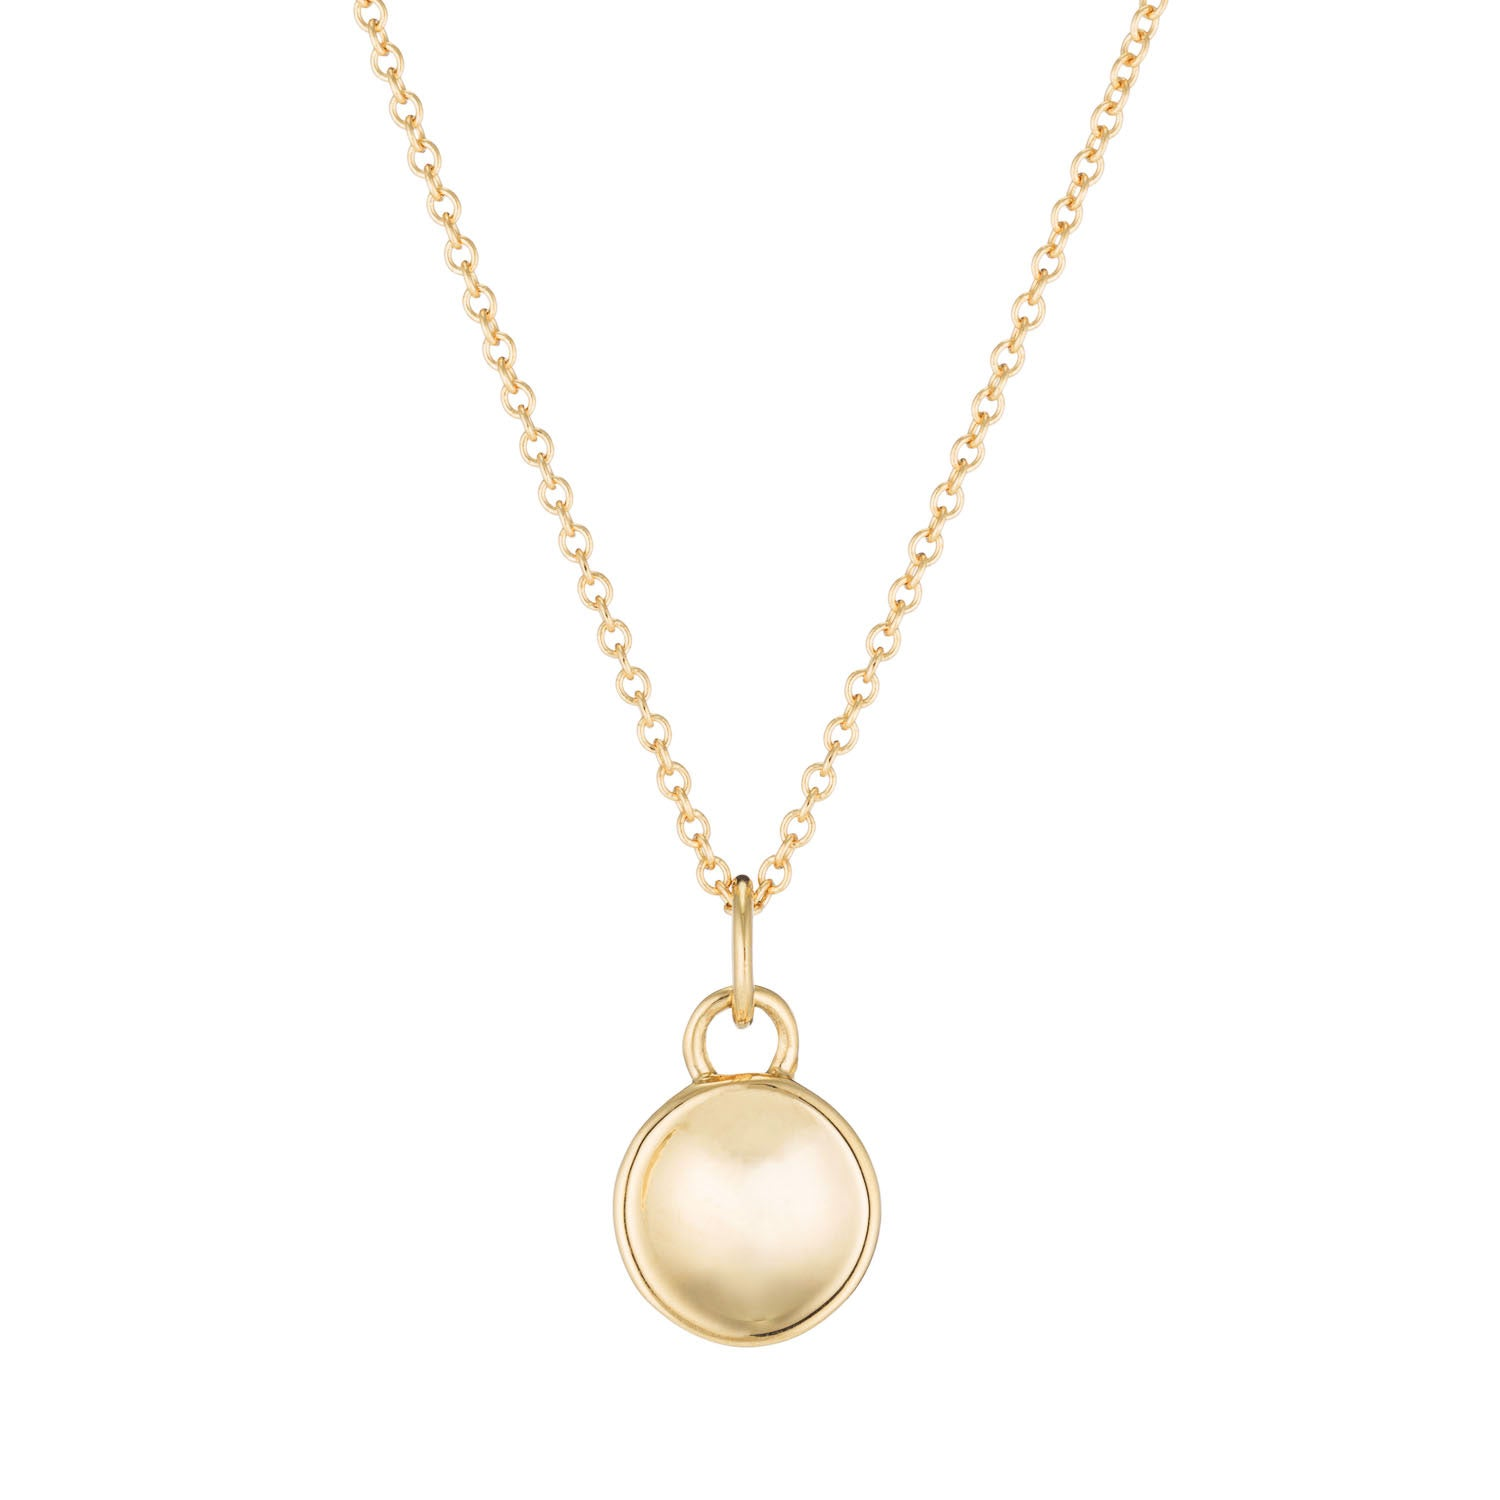 14K Yellow gold concave disc necklace by Valerie Madison